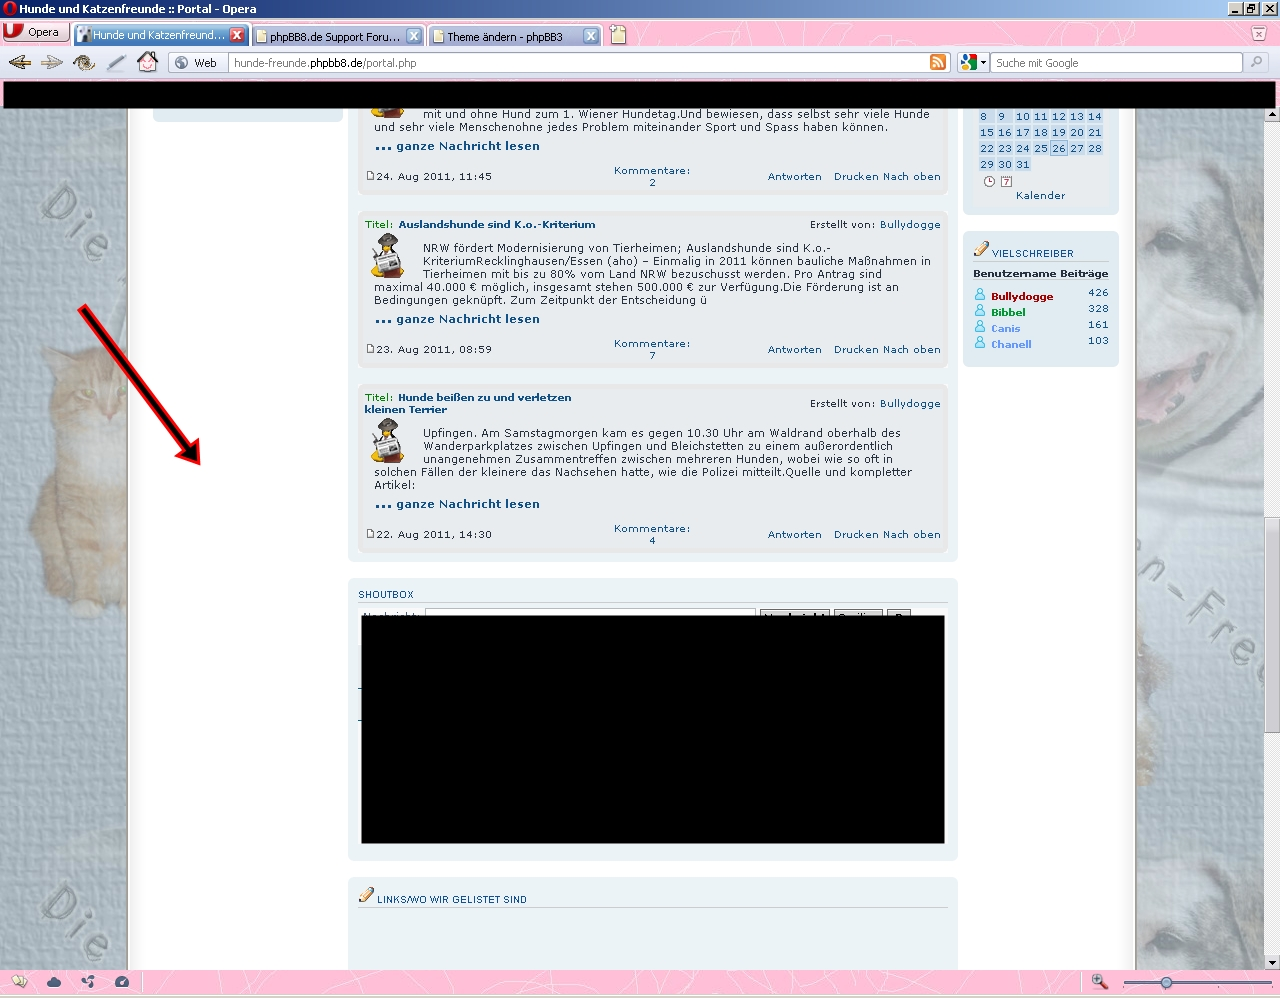 sharepoint 2010 link from image 6l